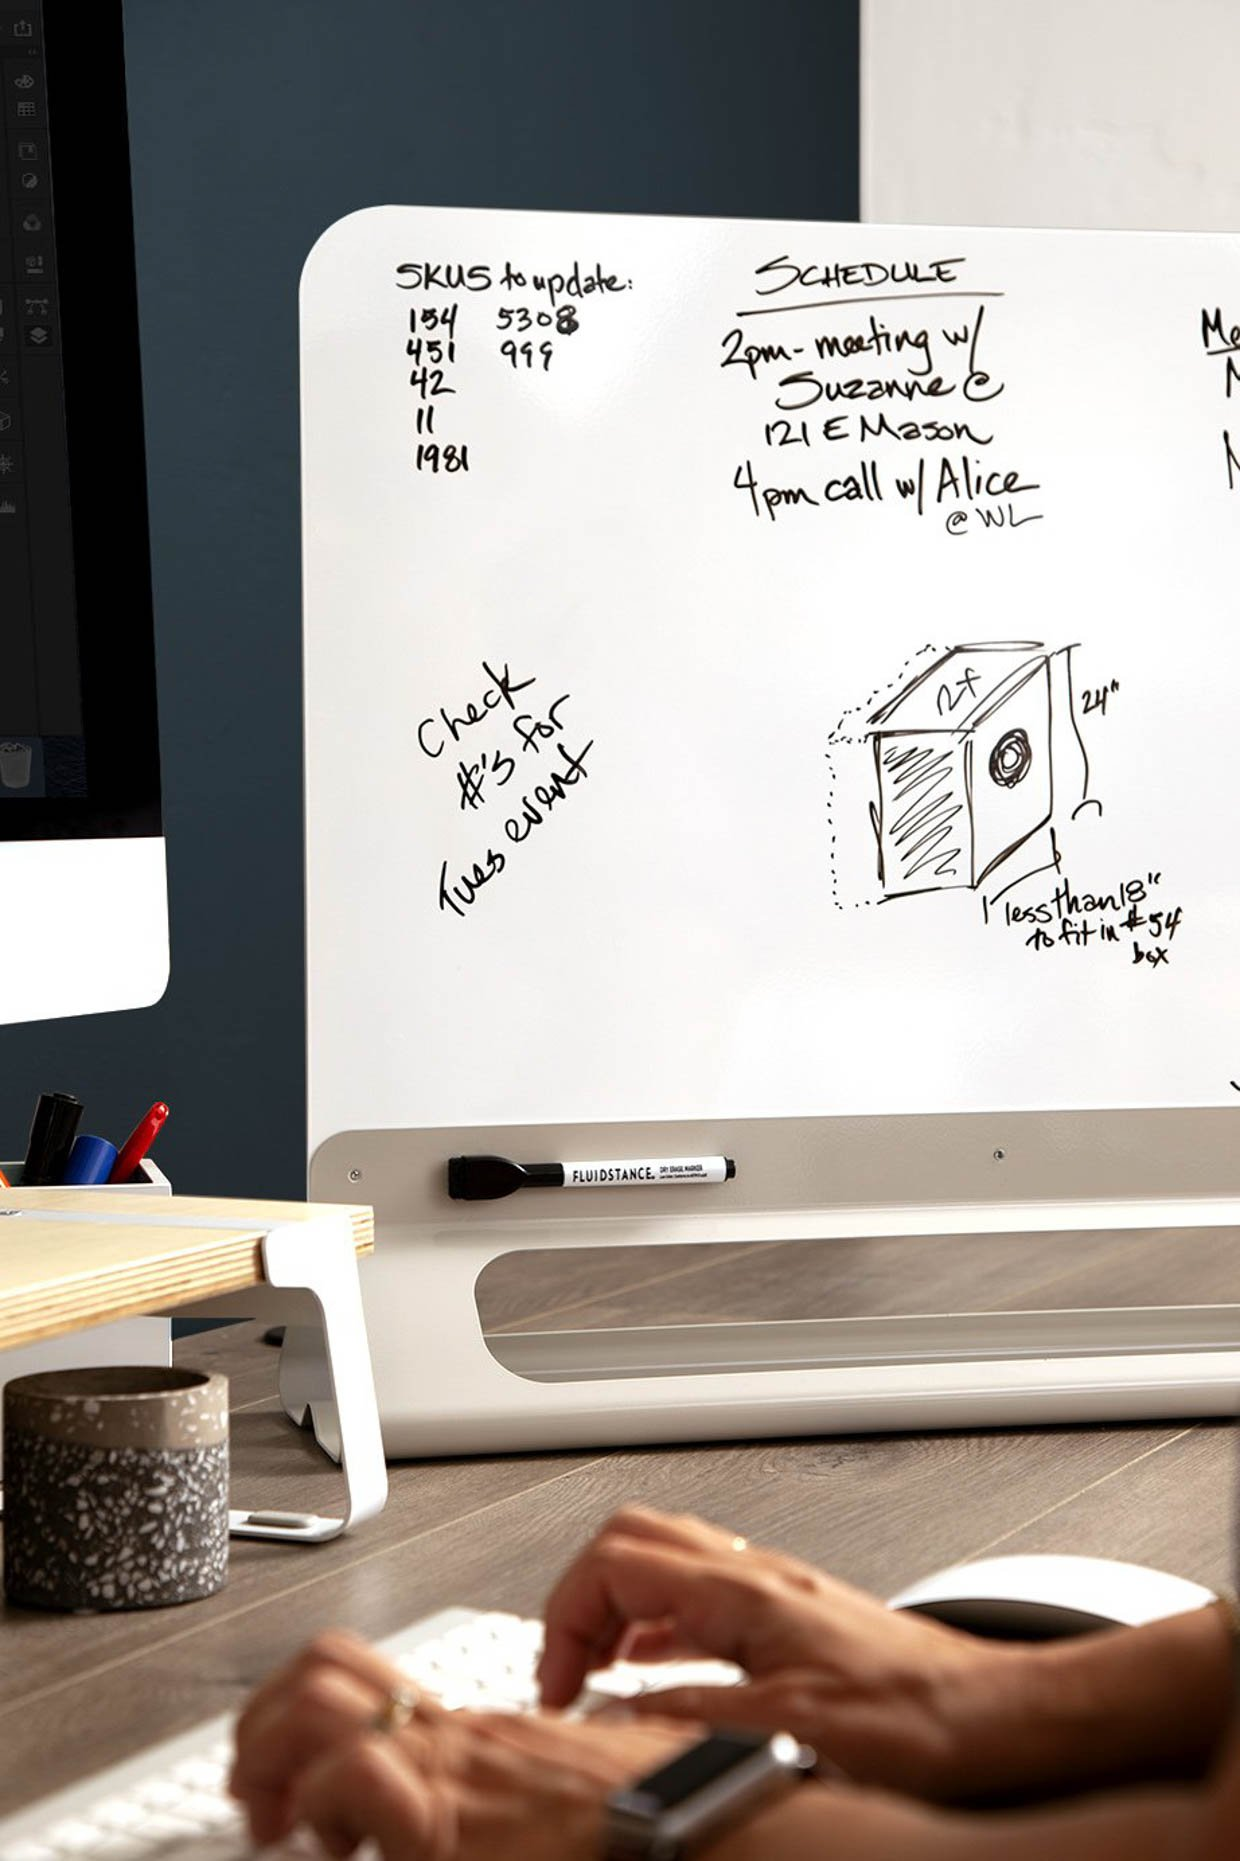 Fluidstance Wall Magnetic Whiteboard